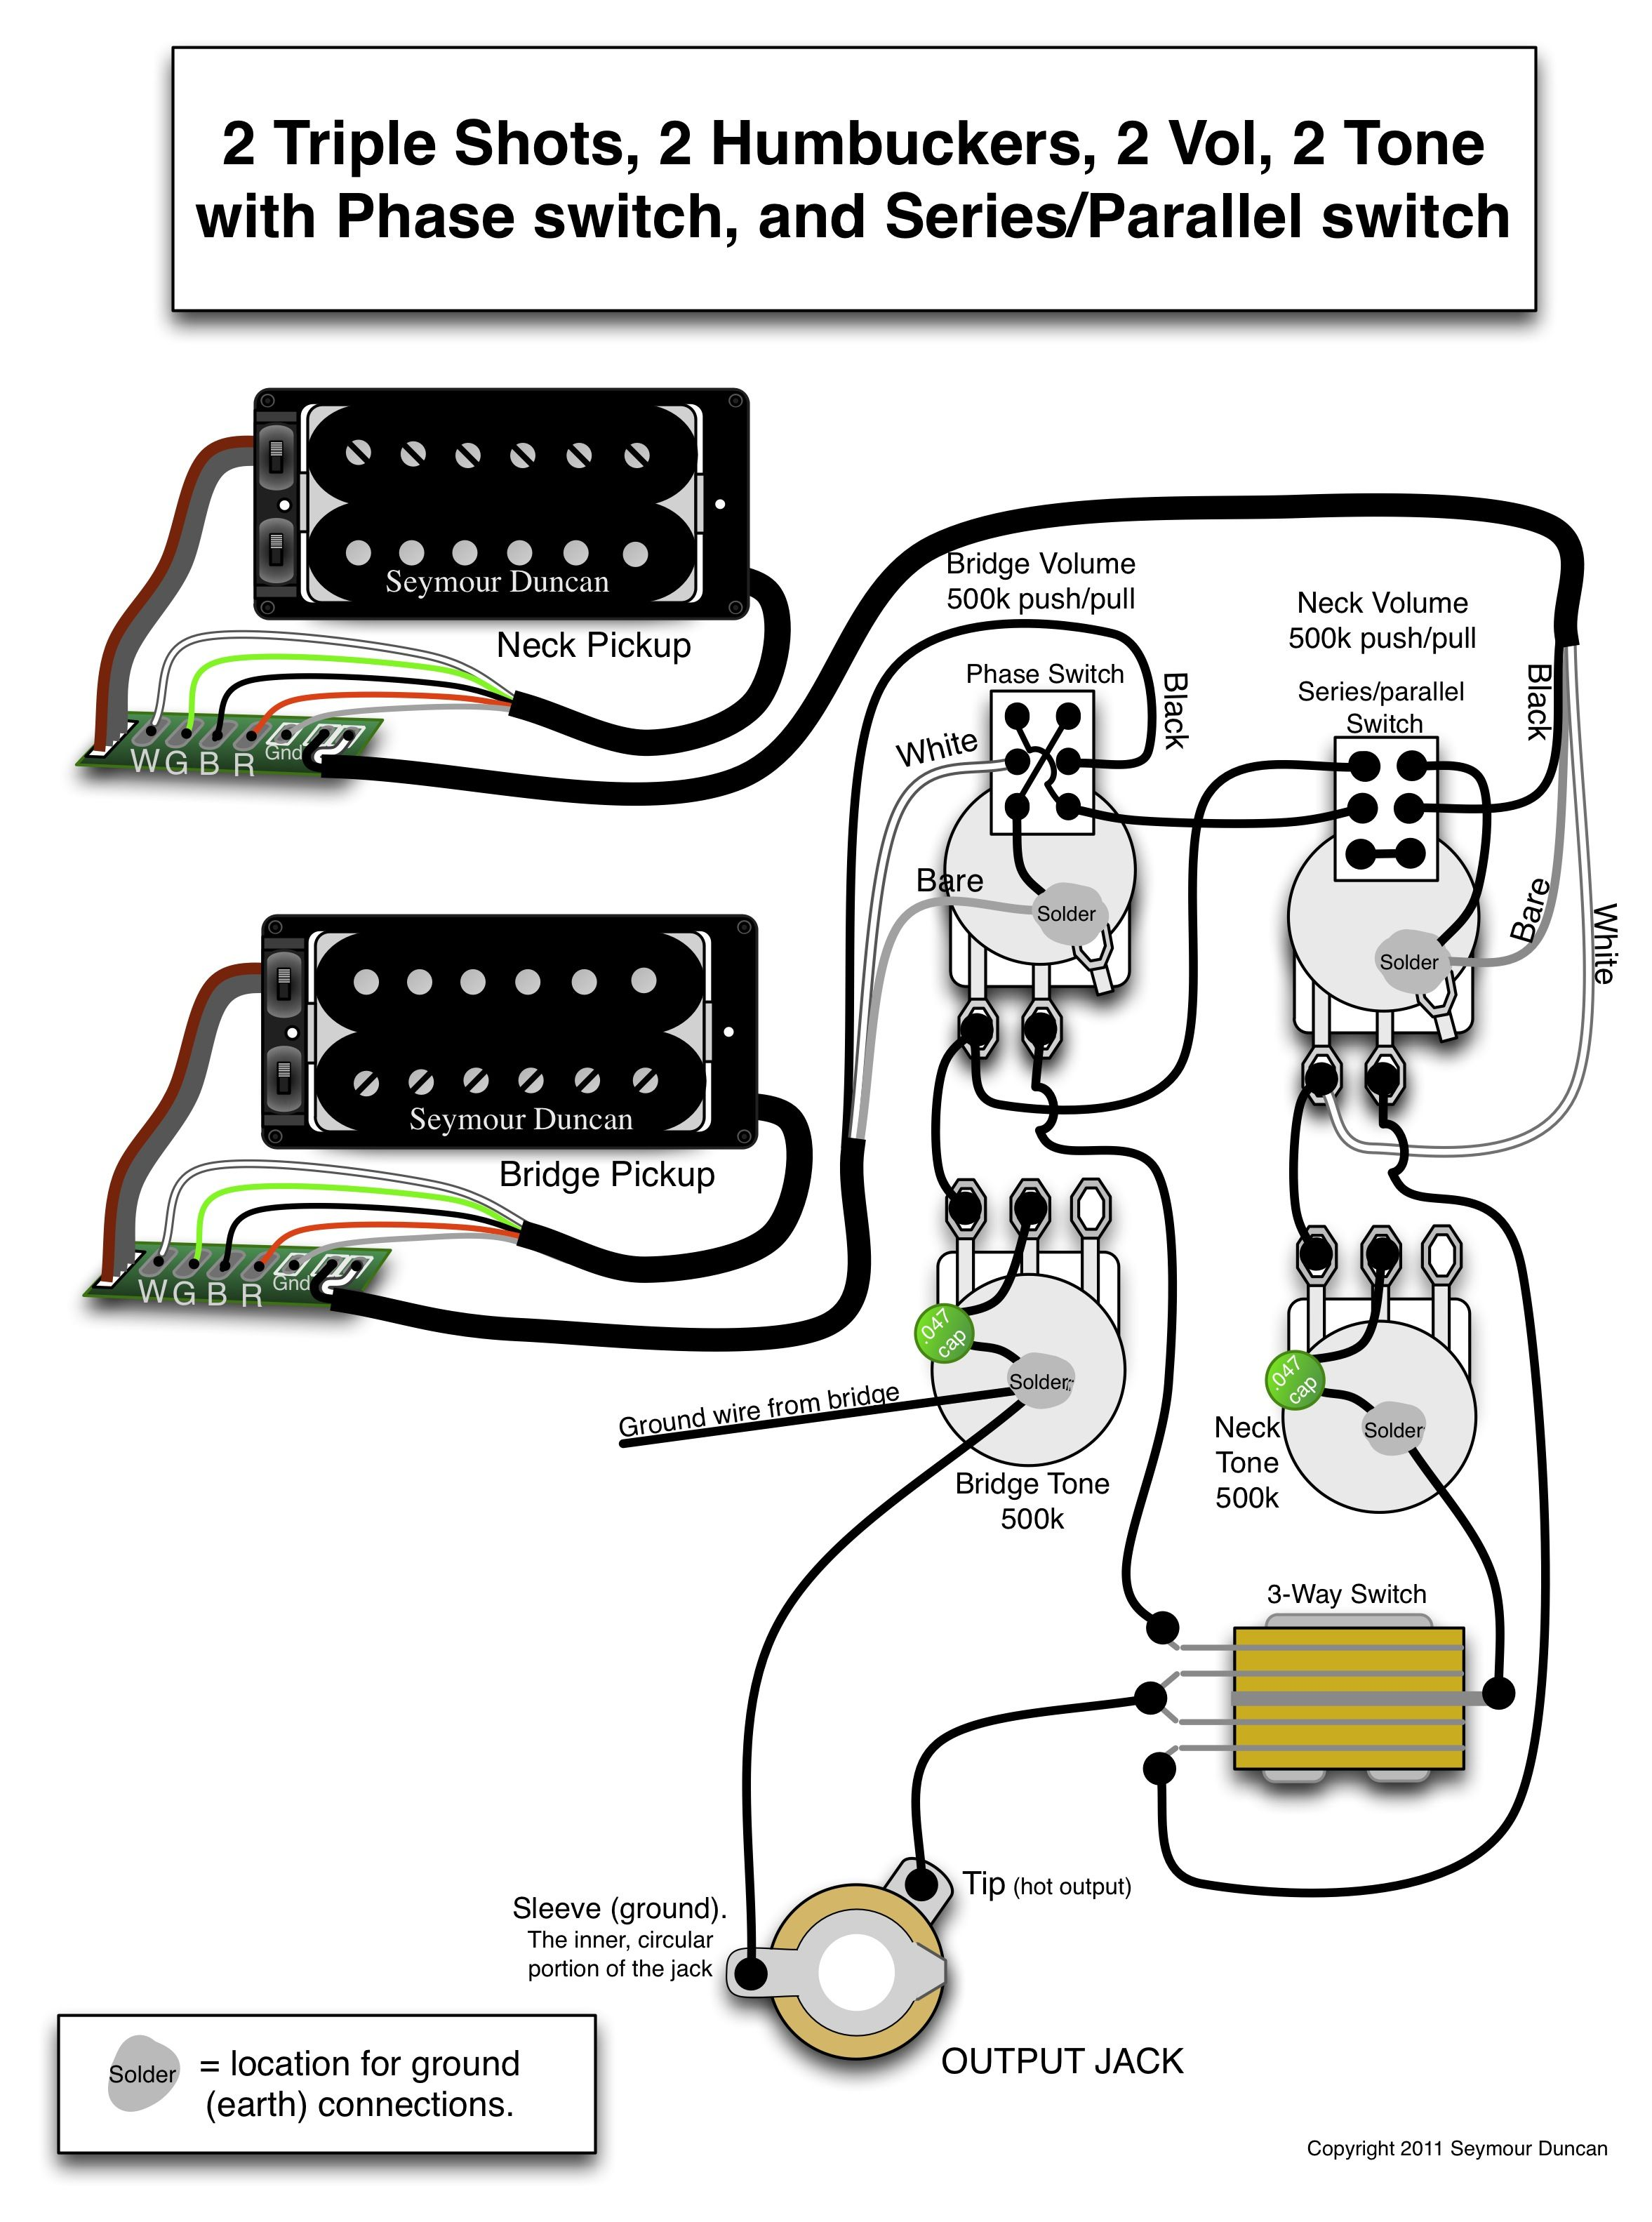 for the wiring diagram look at the top middle g